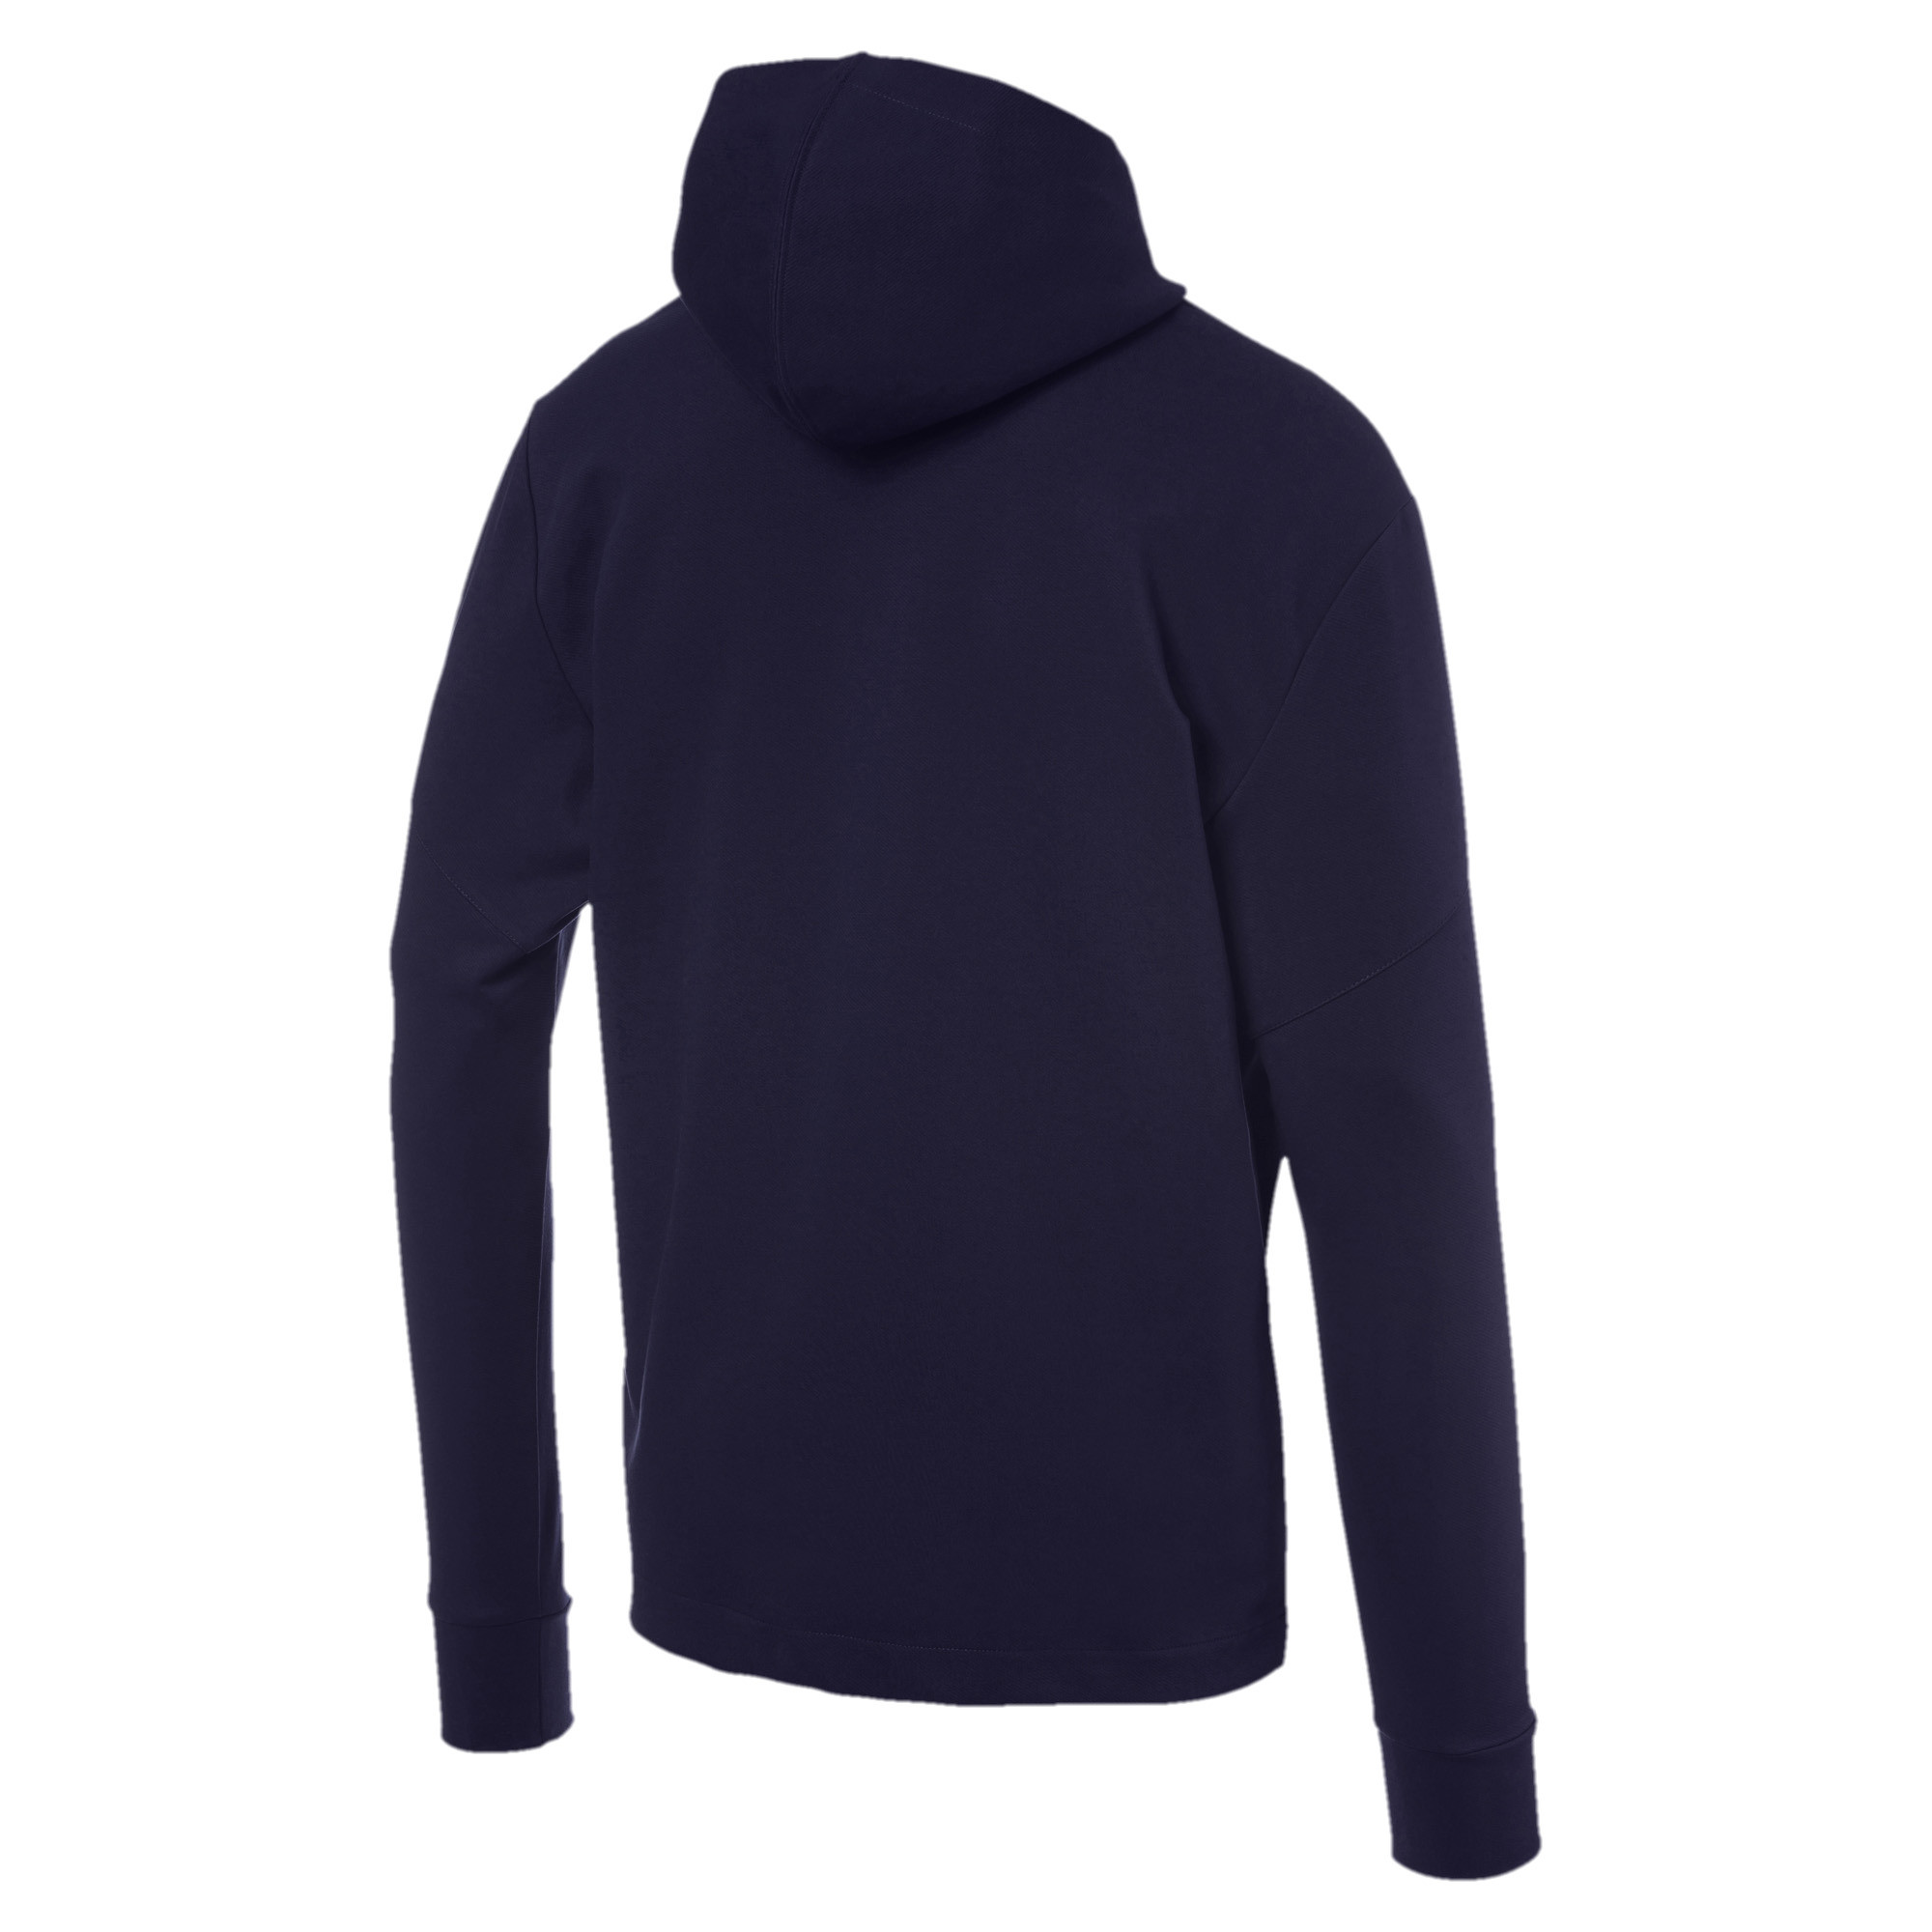 PUMA-Amplified-Men-039-s-Hooded-Jacket-Men-Sweat-Basics thumbnail 3